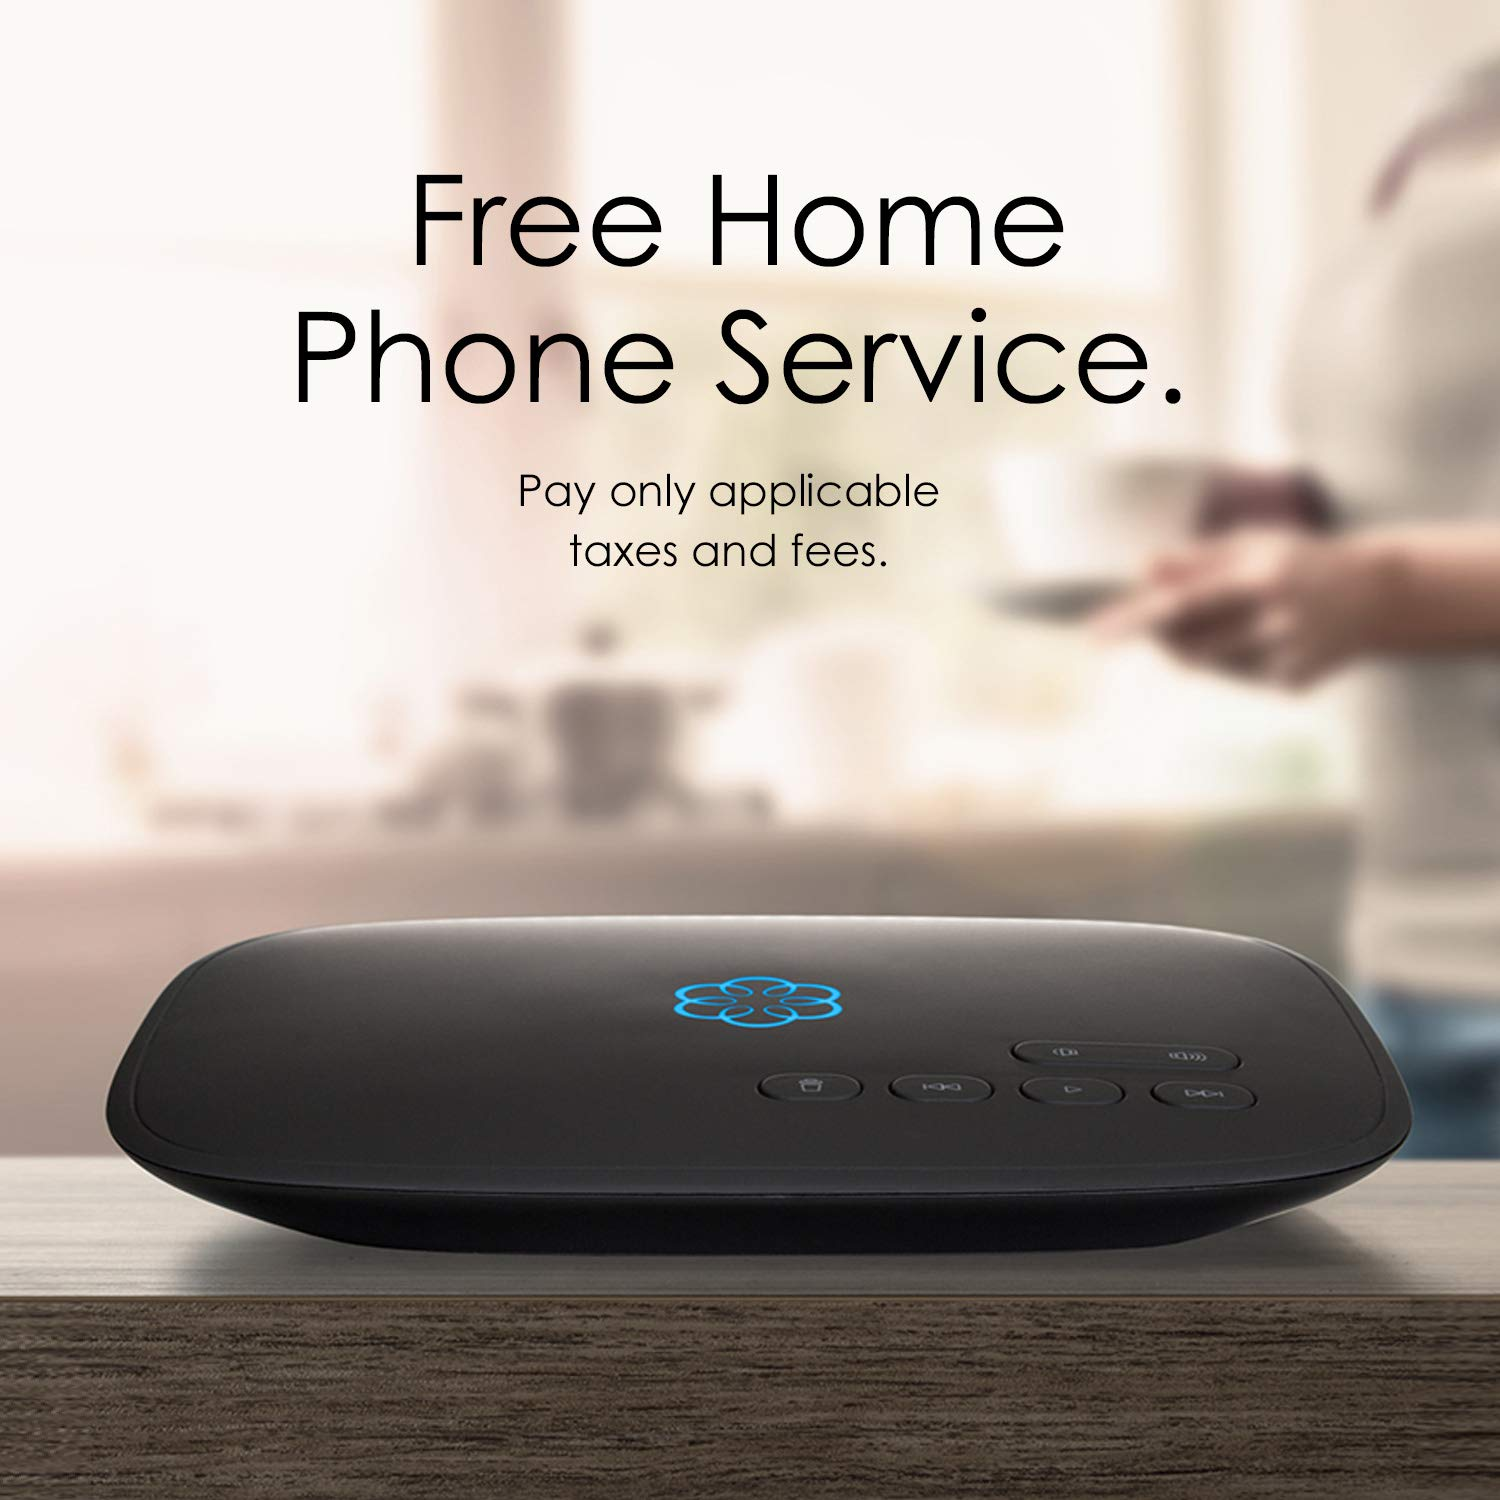 Ooma Telo Free Home Phone Service Works With Amazon Telephone Wiring Diagram As Well Jack Echo And Smart Devices Electronics